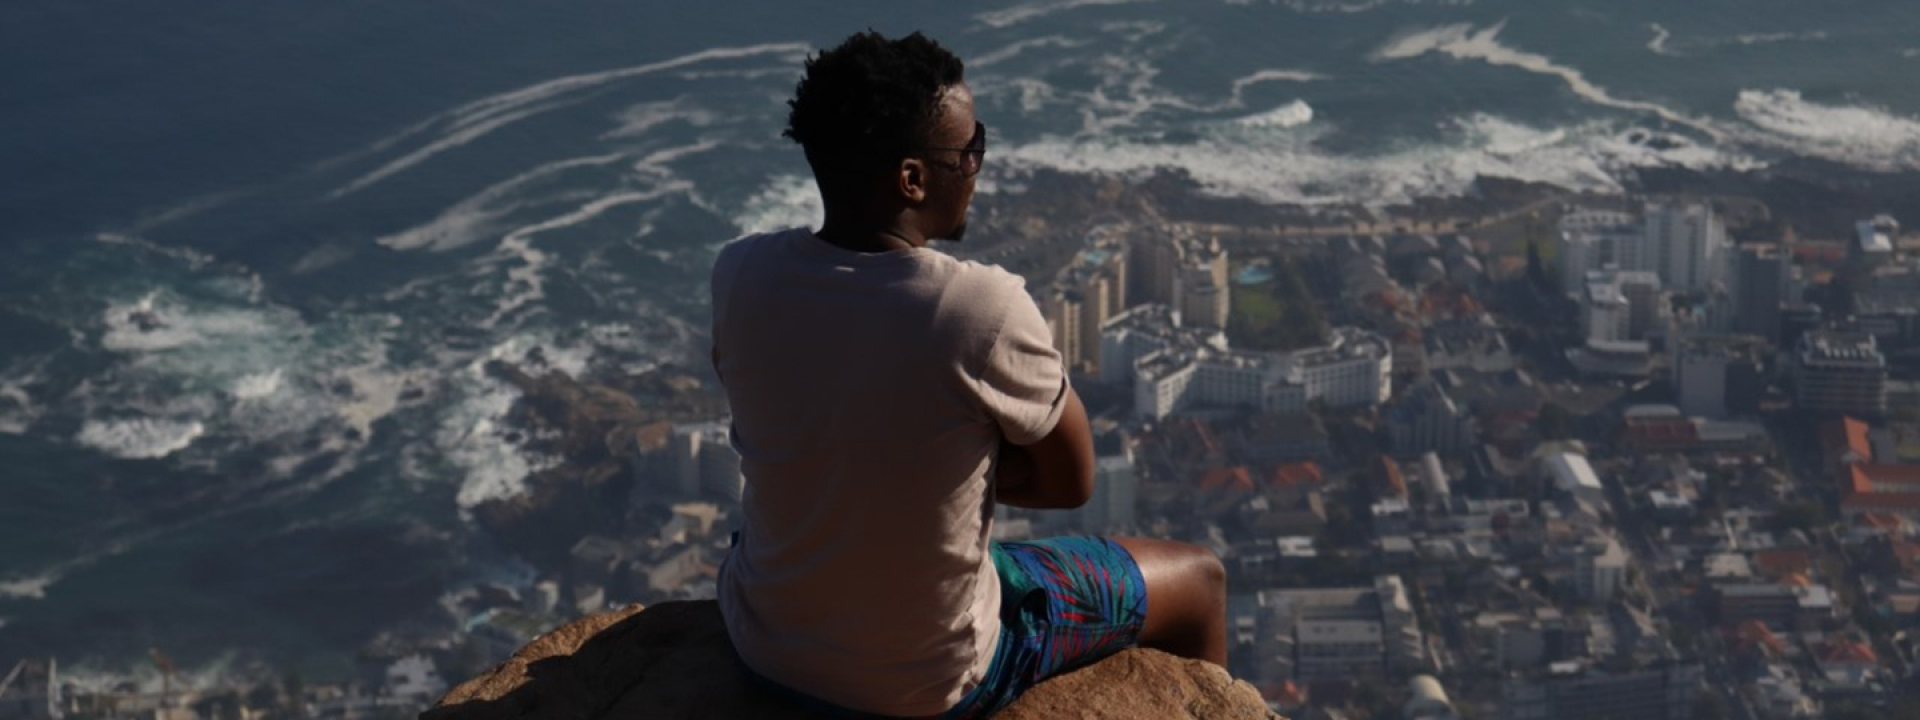 Reflections from Lion's Head